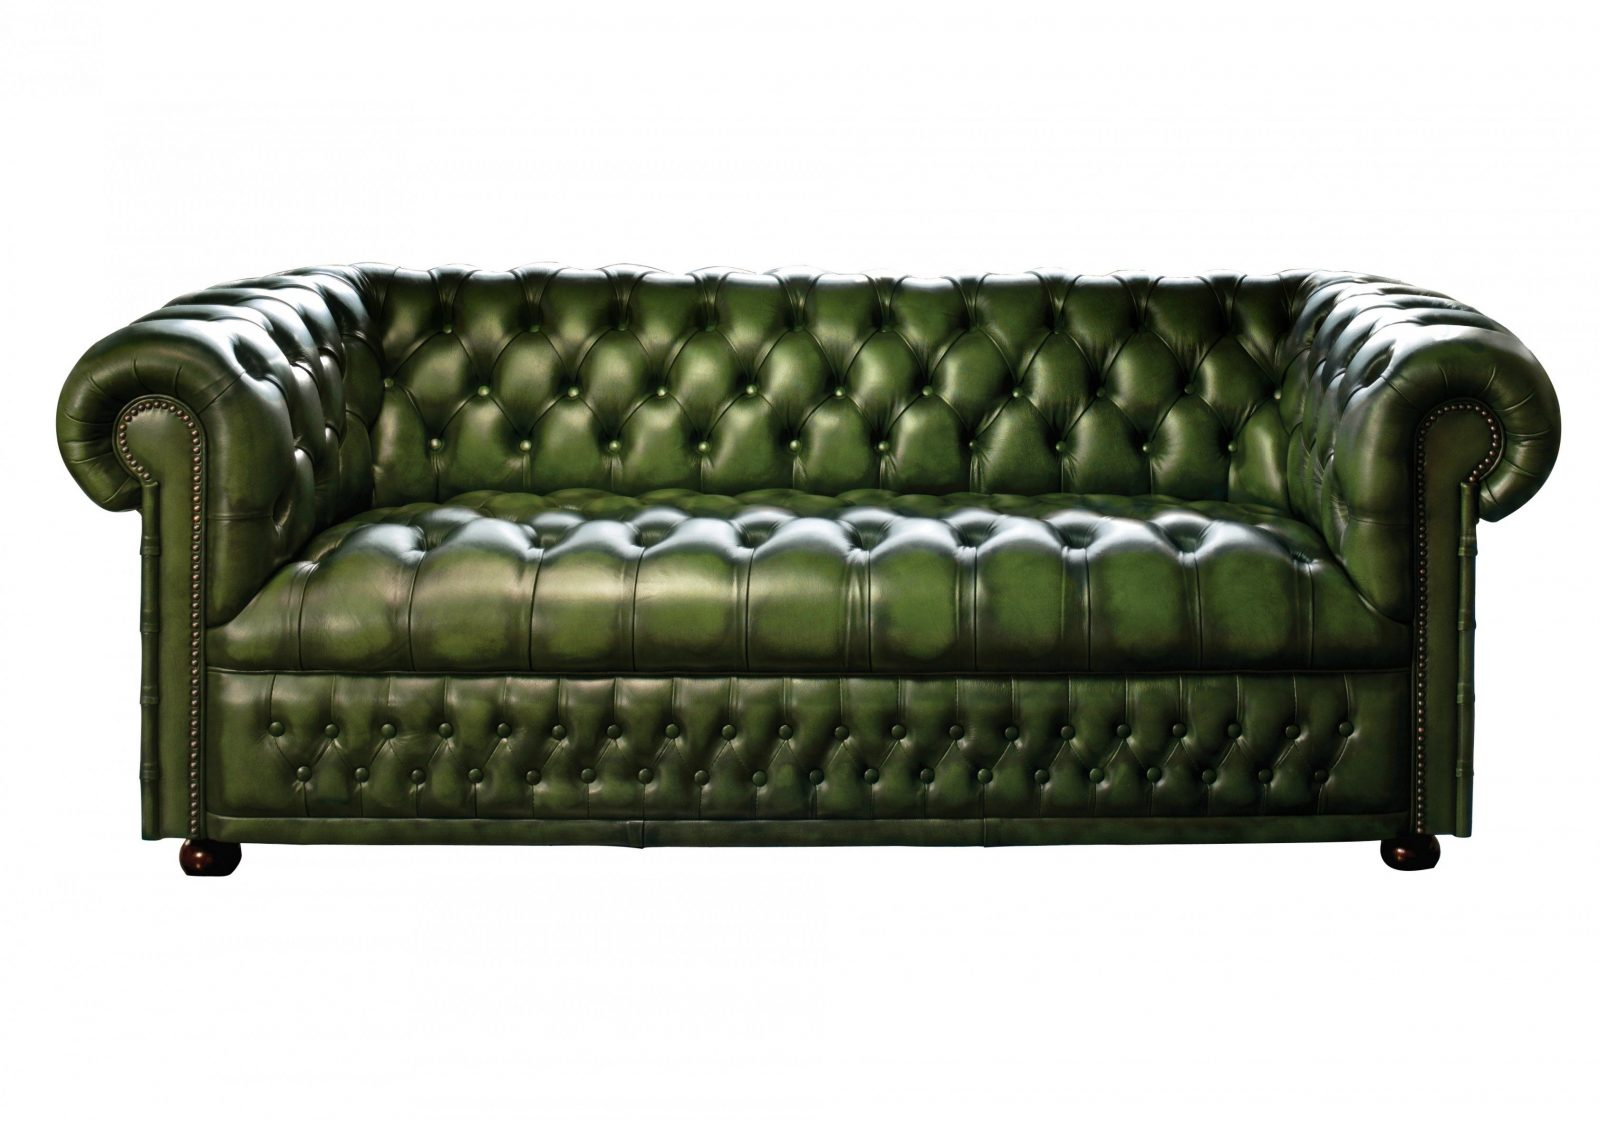 Sofas  Grey Leather Chesterfield Sofa Convertible Sofa Bed von Green Leather Chesterfield Sofa Photo